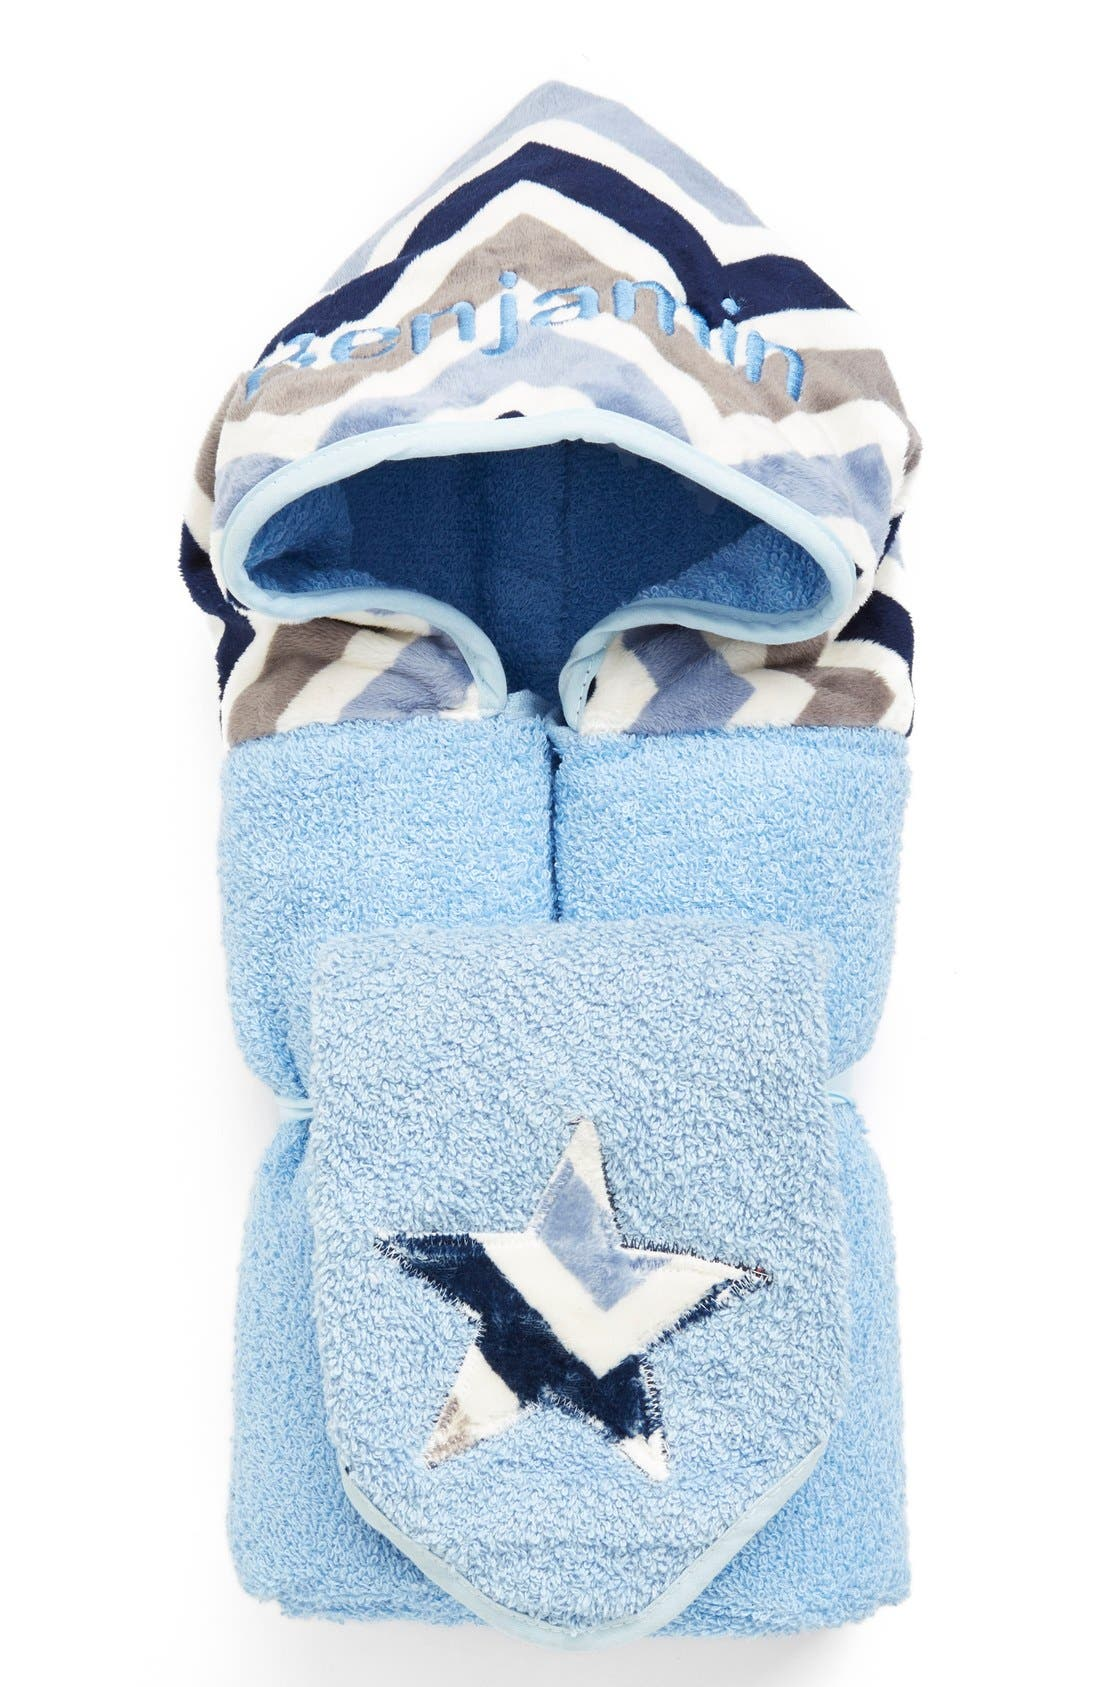 Personalized Hooded Towel,                         Main,                         color, BLUE CHEVRON